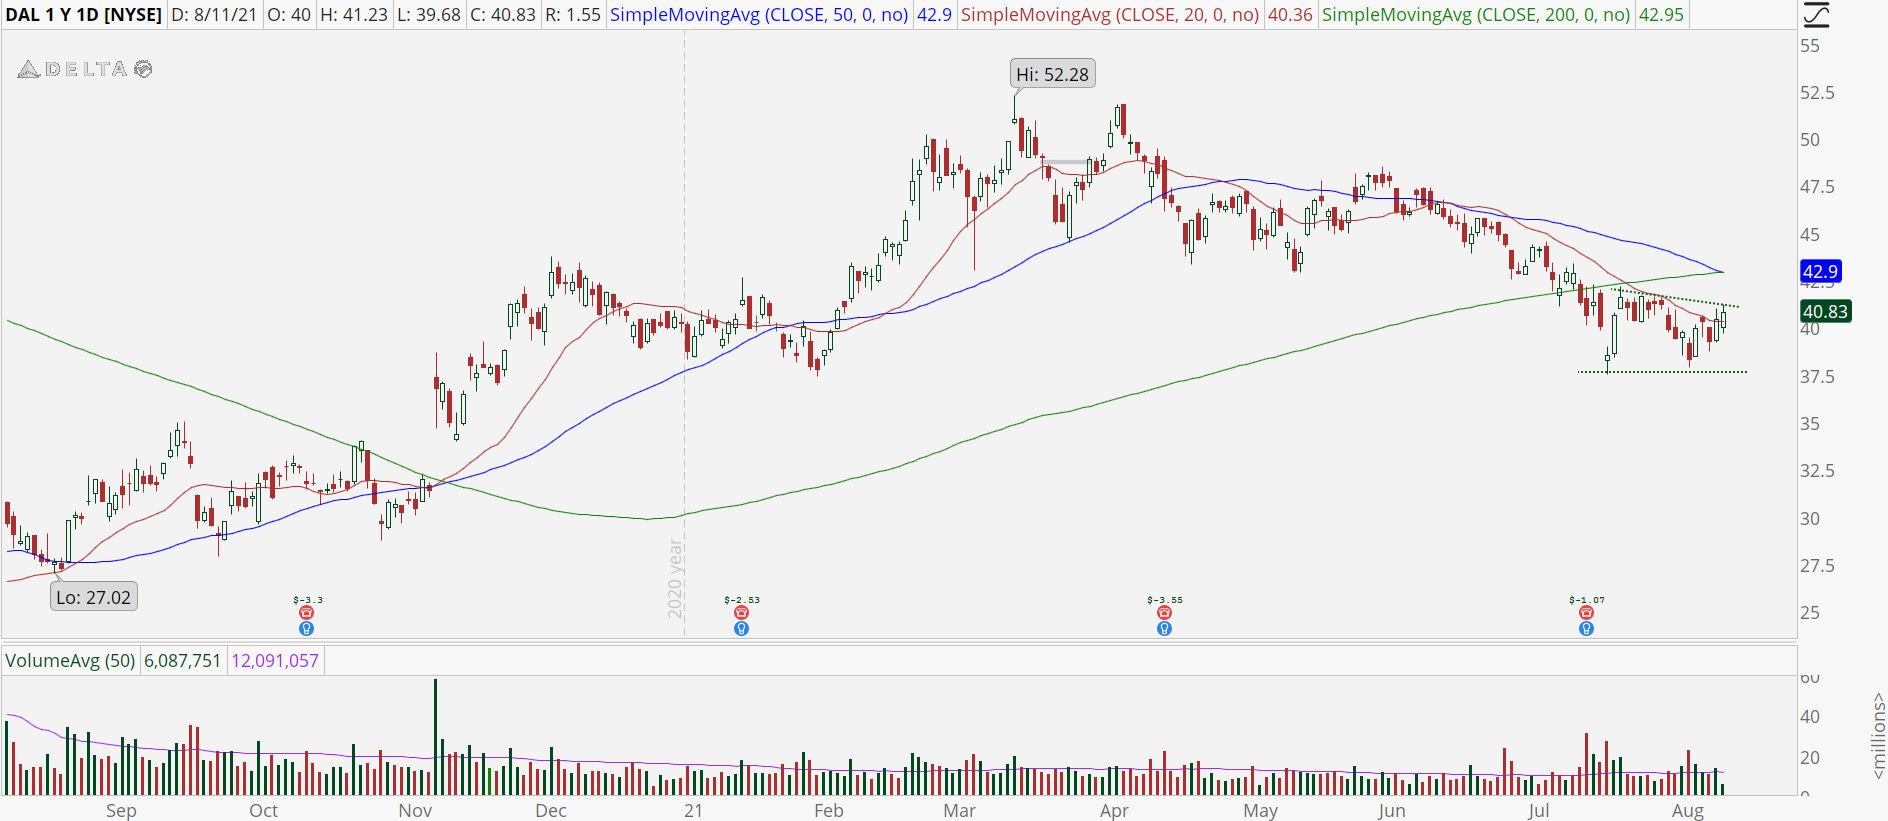 Delta Airlines (DAL) stock with double bottom pattern